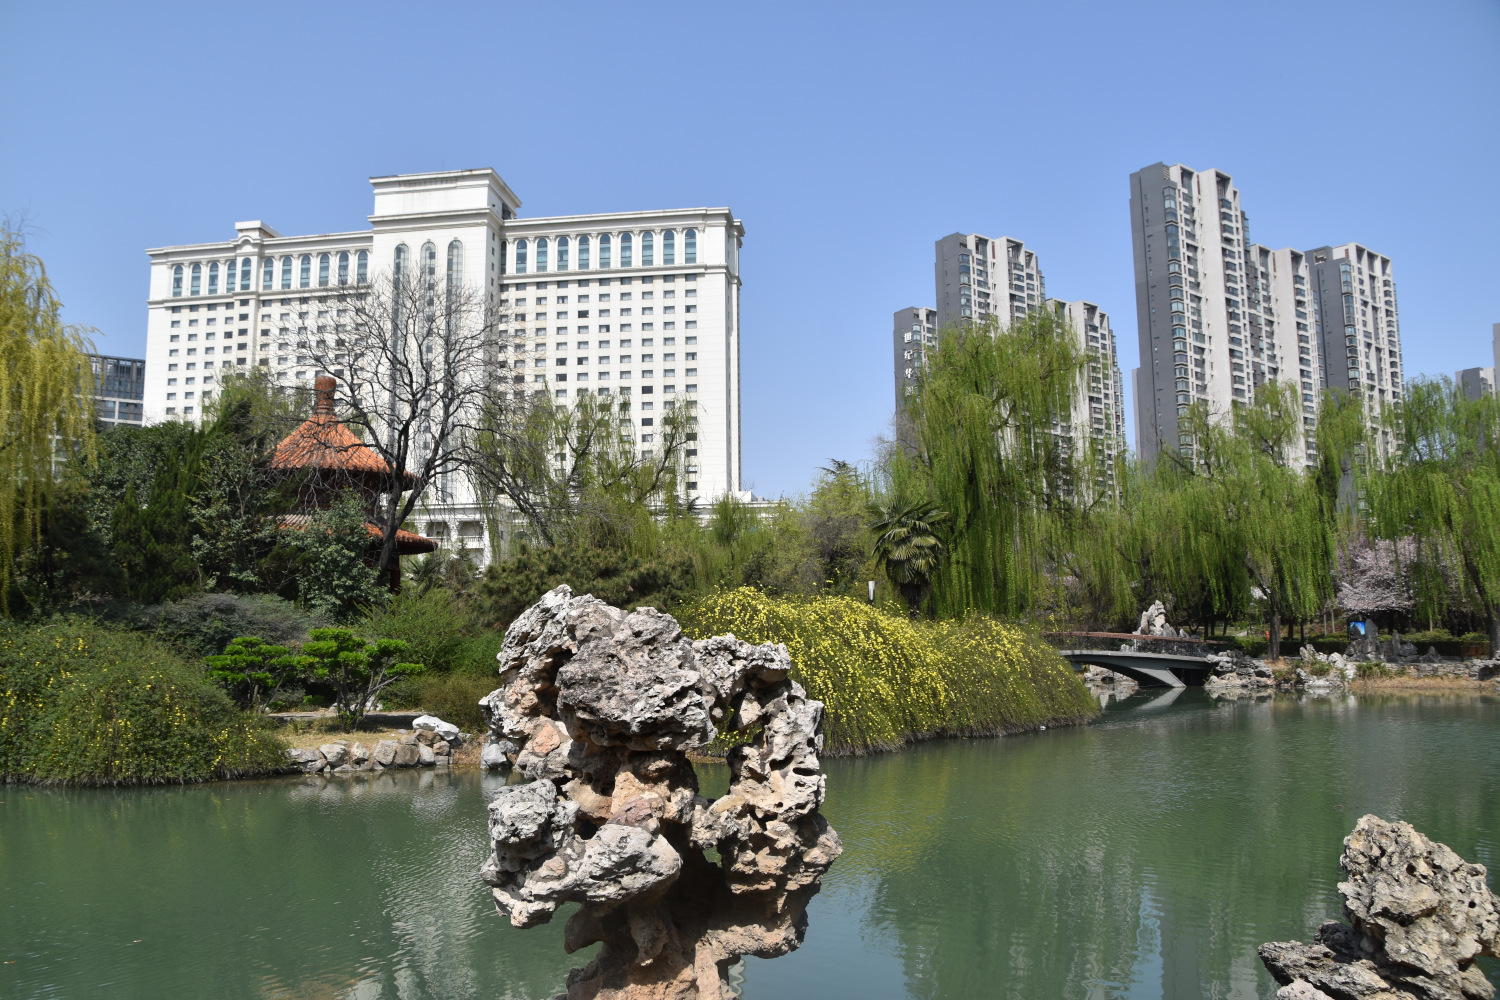 Insider's guide to Luoyang, China with the Luoyang attractions, restaurants, hotels, tips, and more